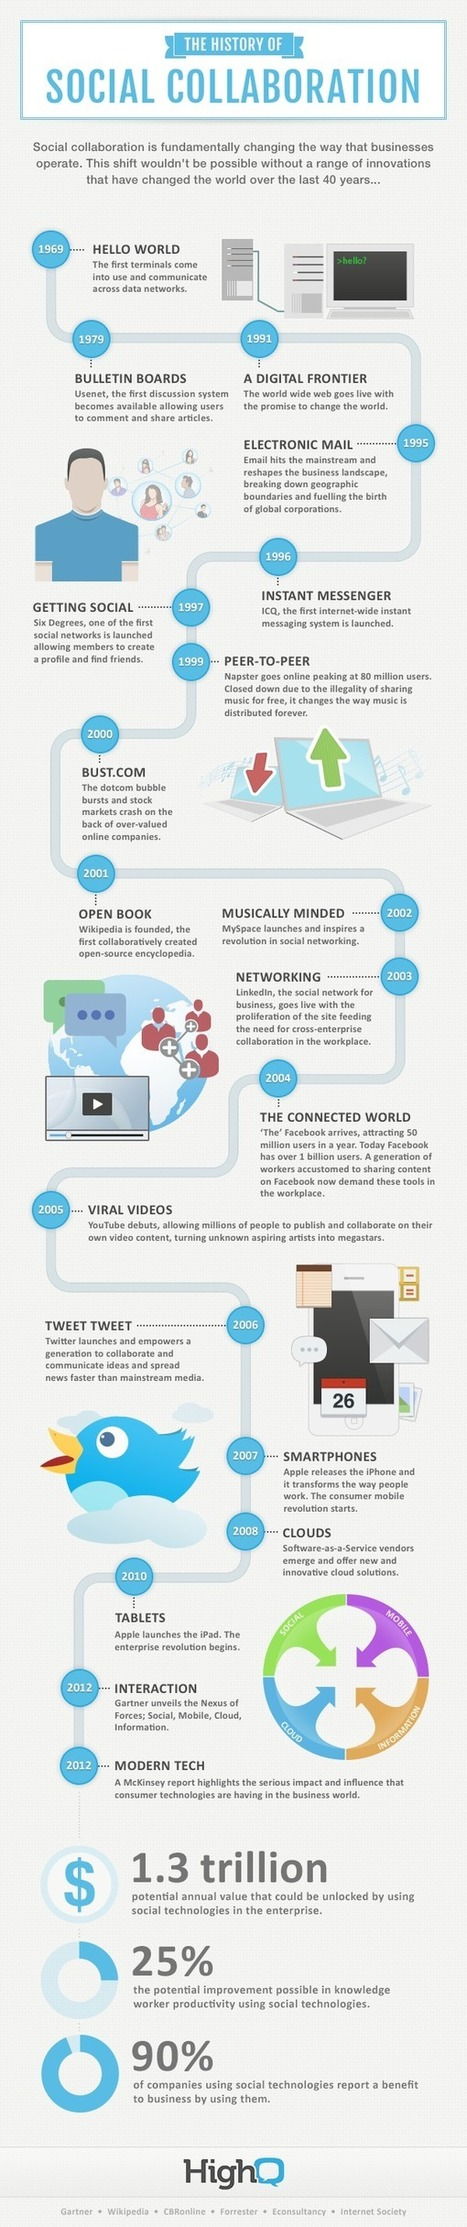 Infographic: The history of social collaboration - HighQ | Mass Media and Content Creation | Scoop.it